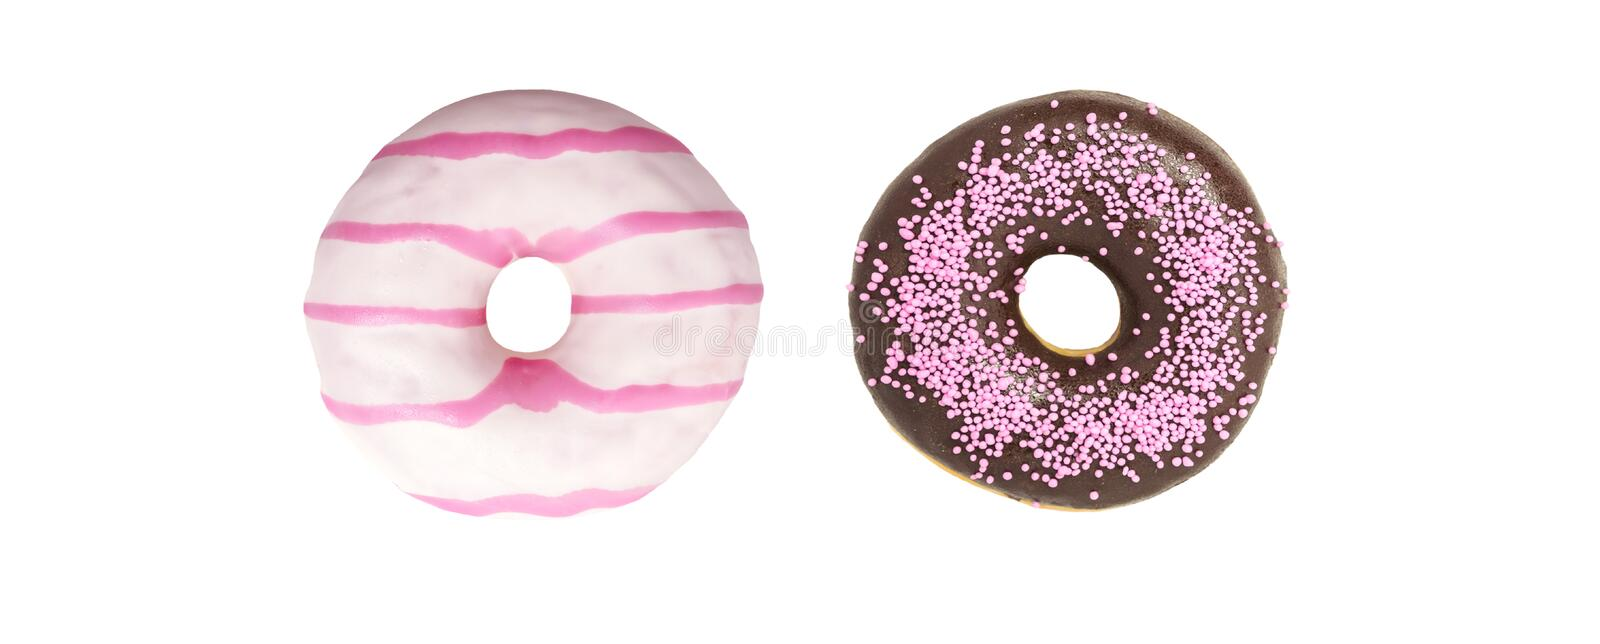 Set Donuts on white background. Assorted Do nuts on white Background, various do nuts royalty free stock image